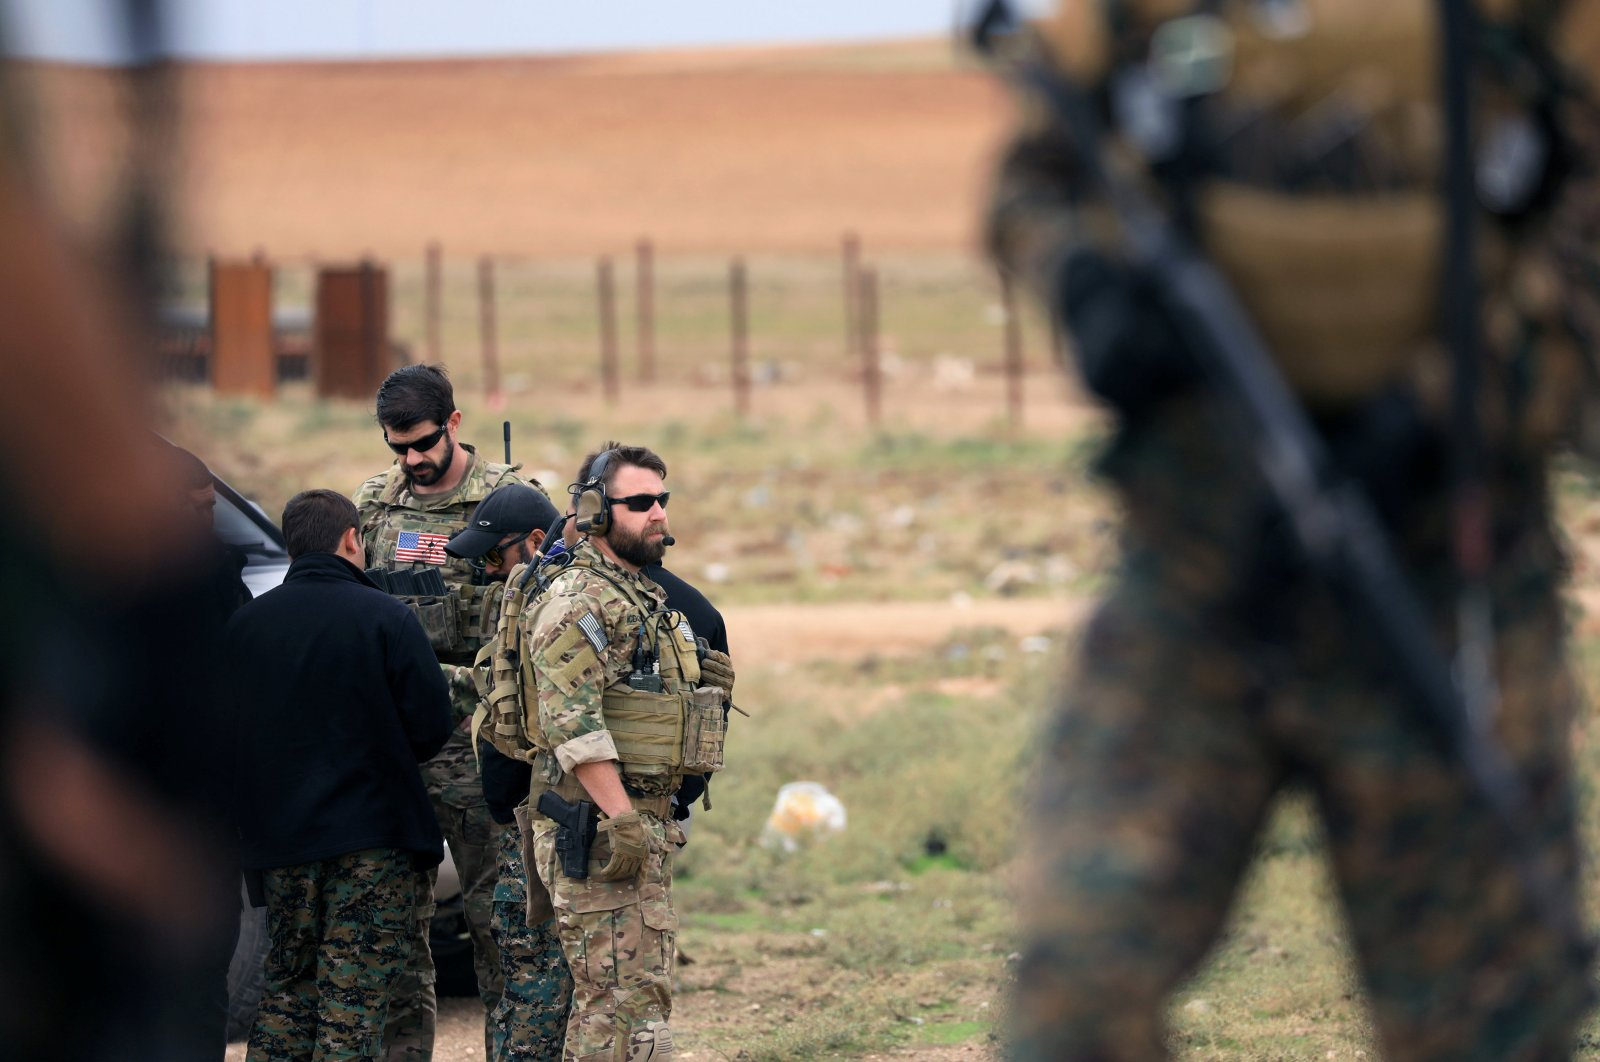 Members of the YPG and U.S. troops are seen during a patrol near the Turkish border in Syria's Hasakah province, Nov.4, 2018. (REUTERS)